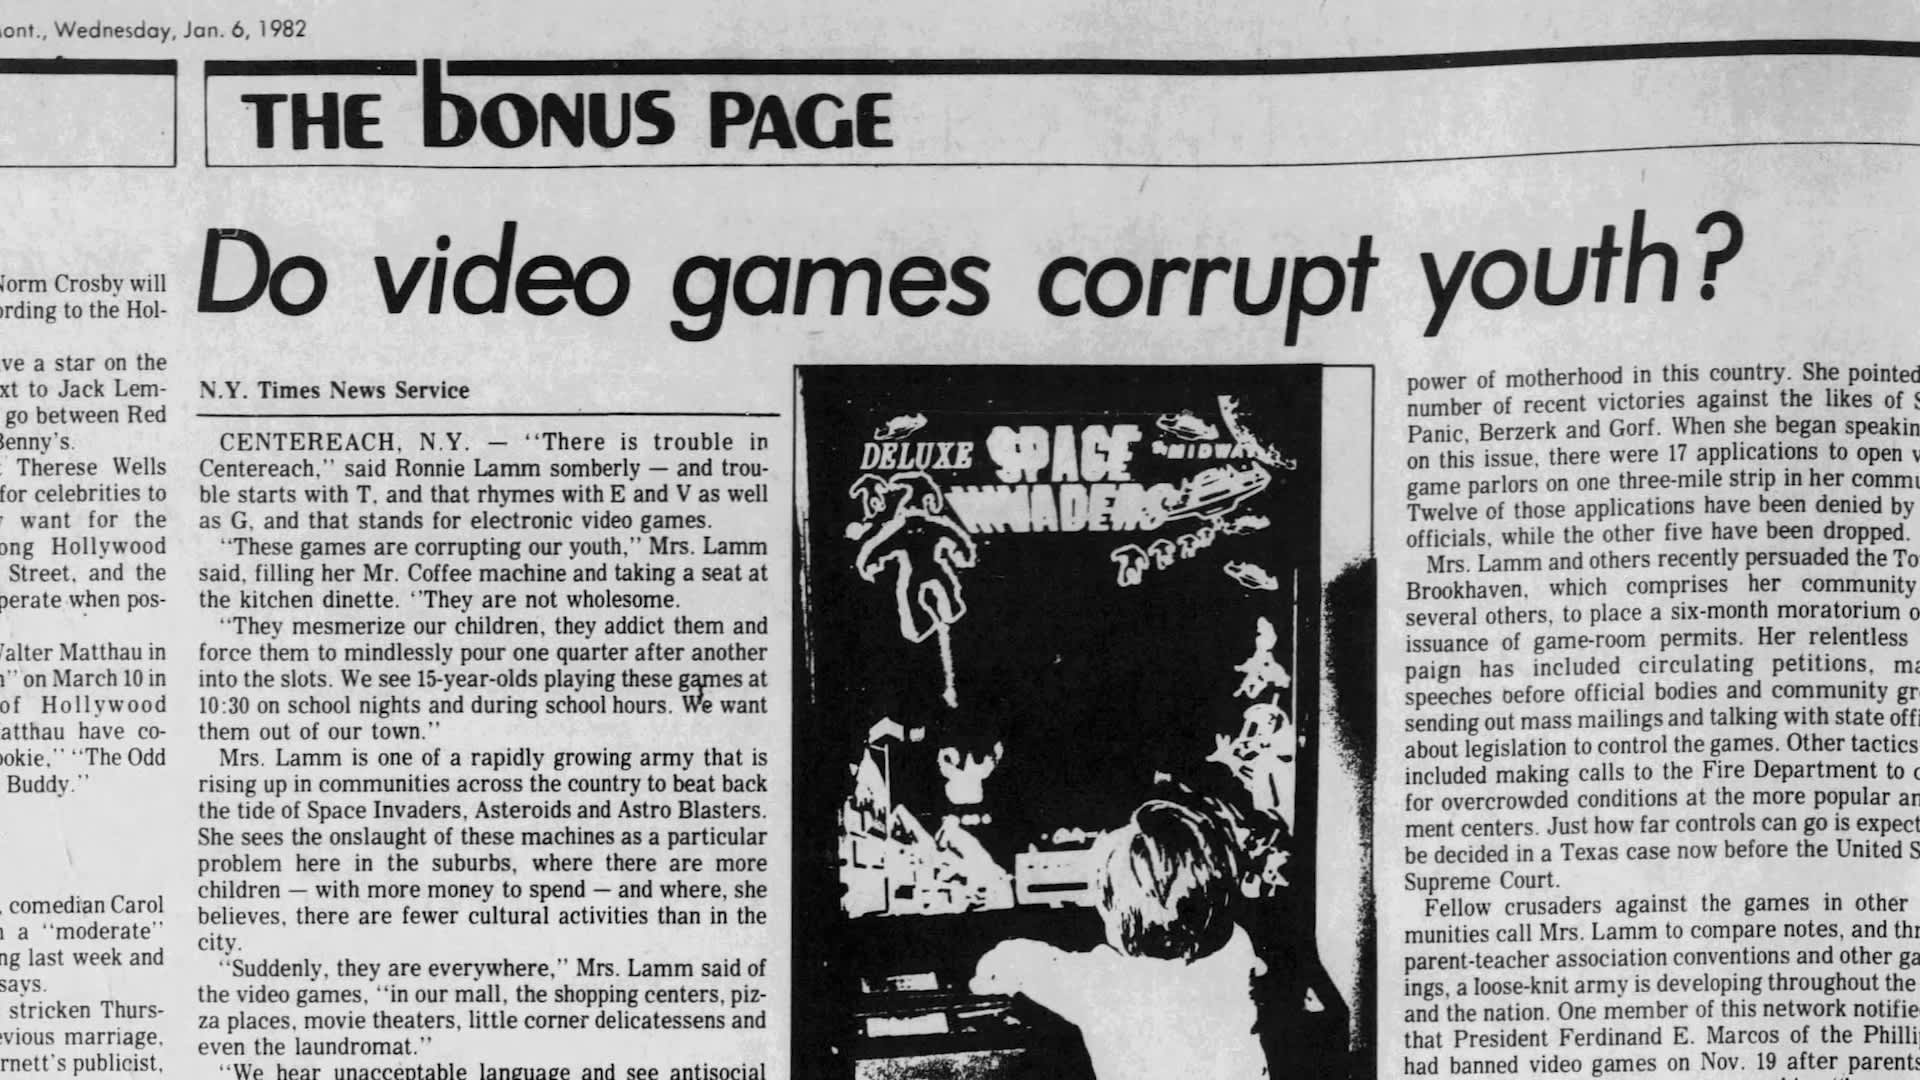 scientists disagree completely on the impact of violent video games